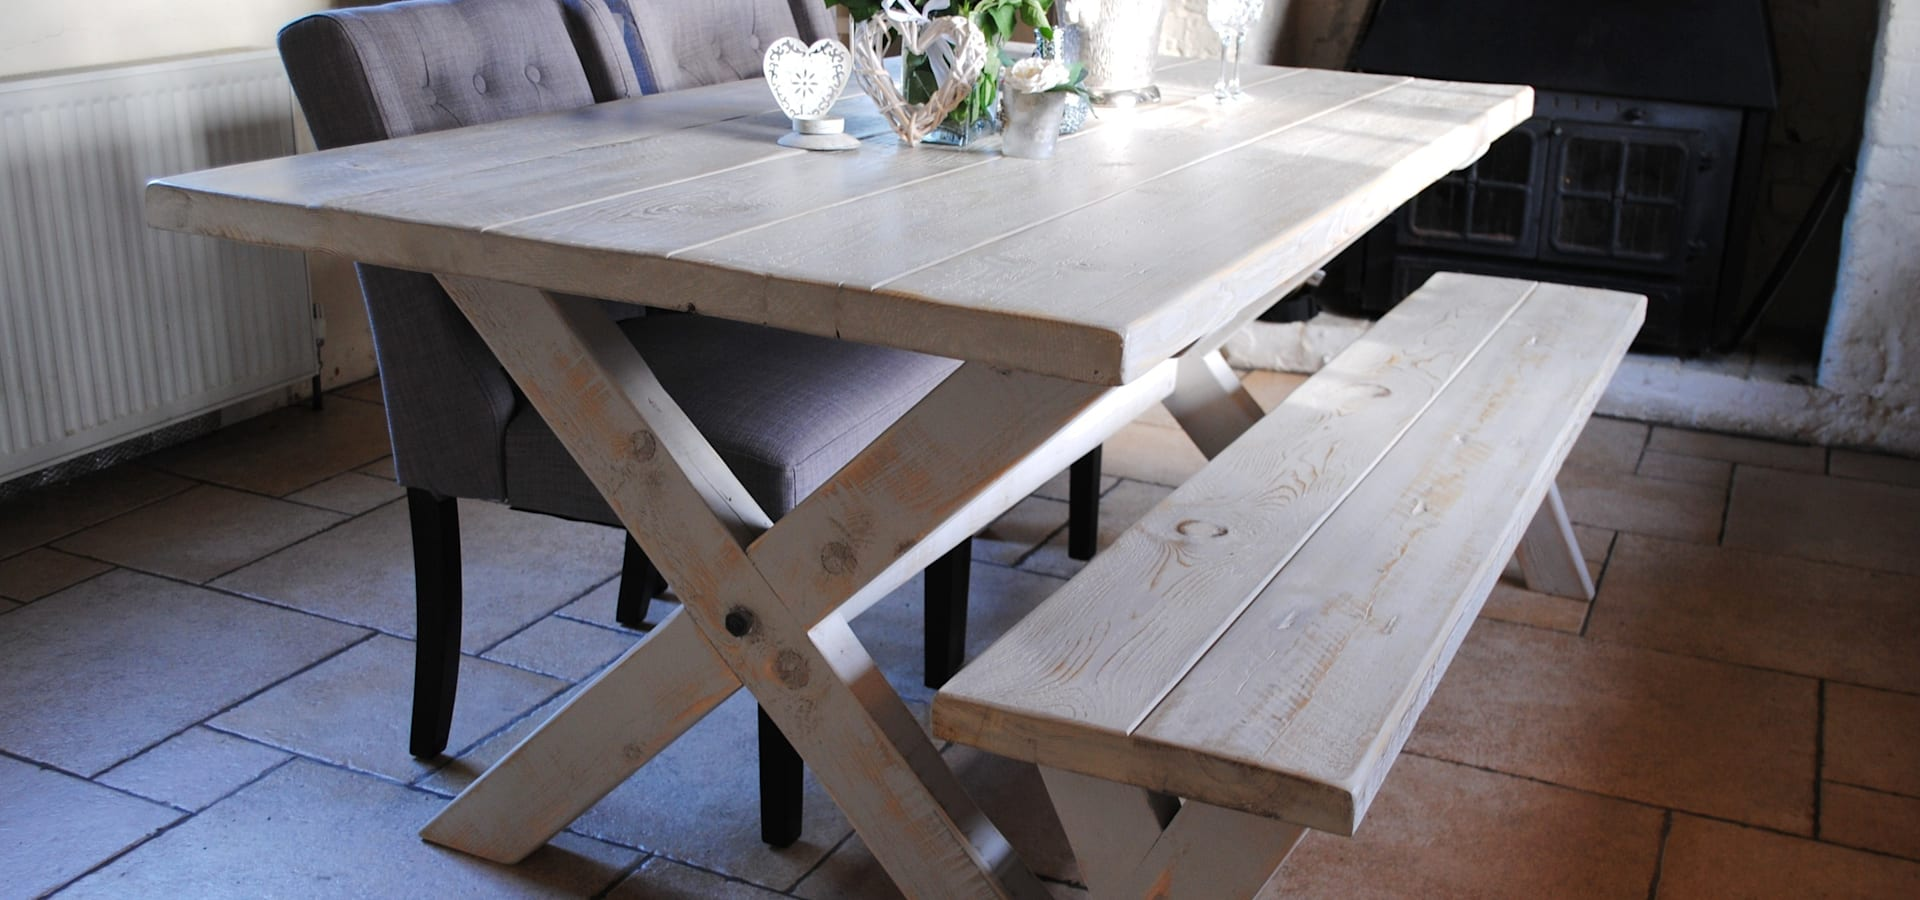 X Frame Bespoke Dining Tables To Order By Dove And Grey